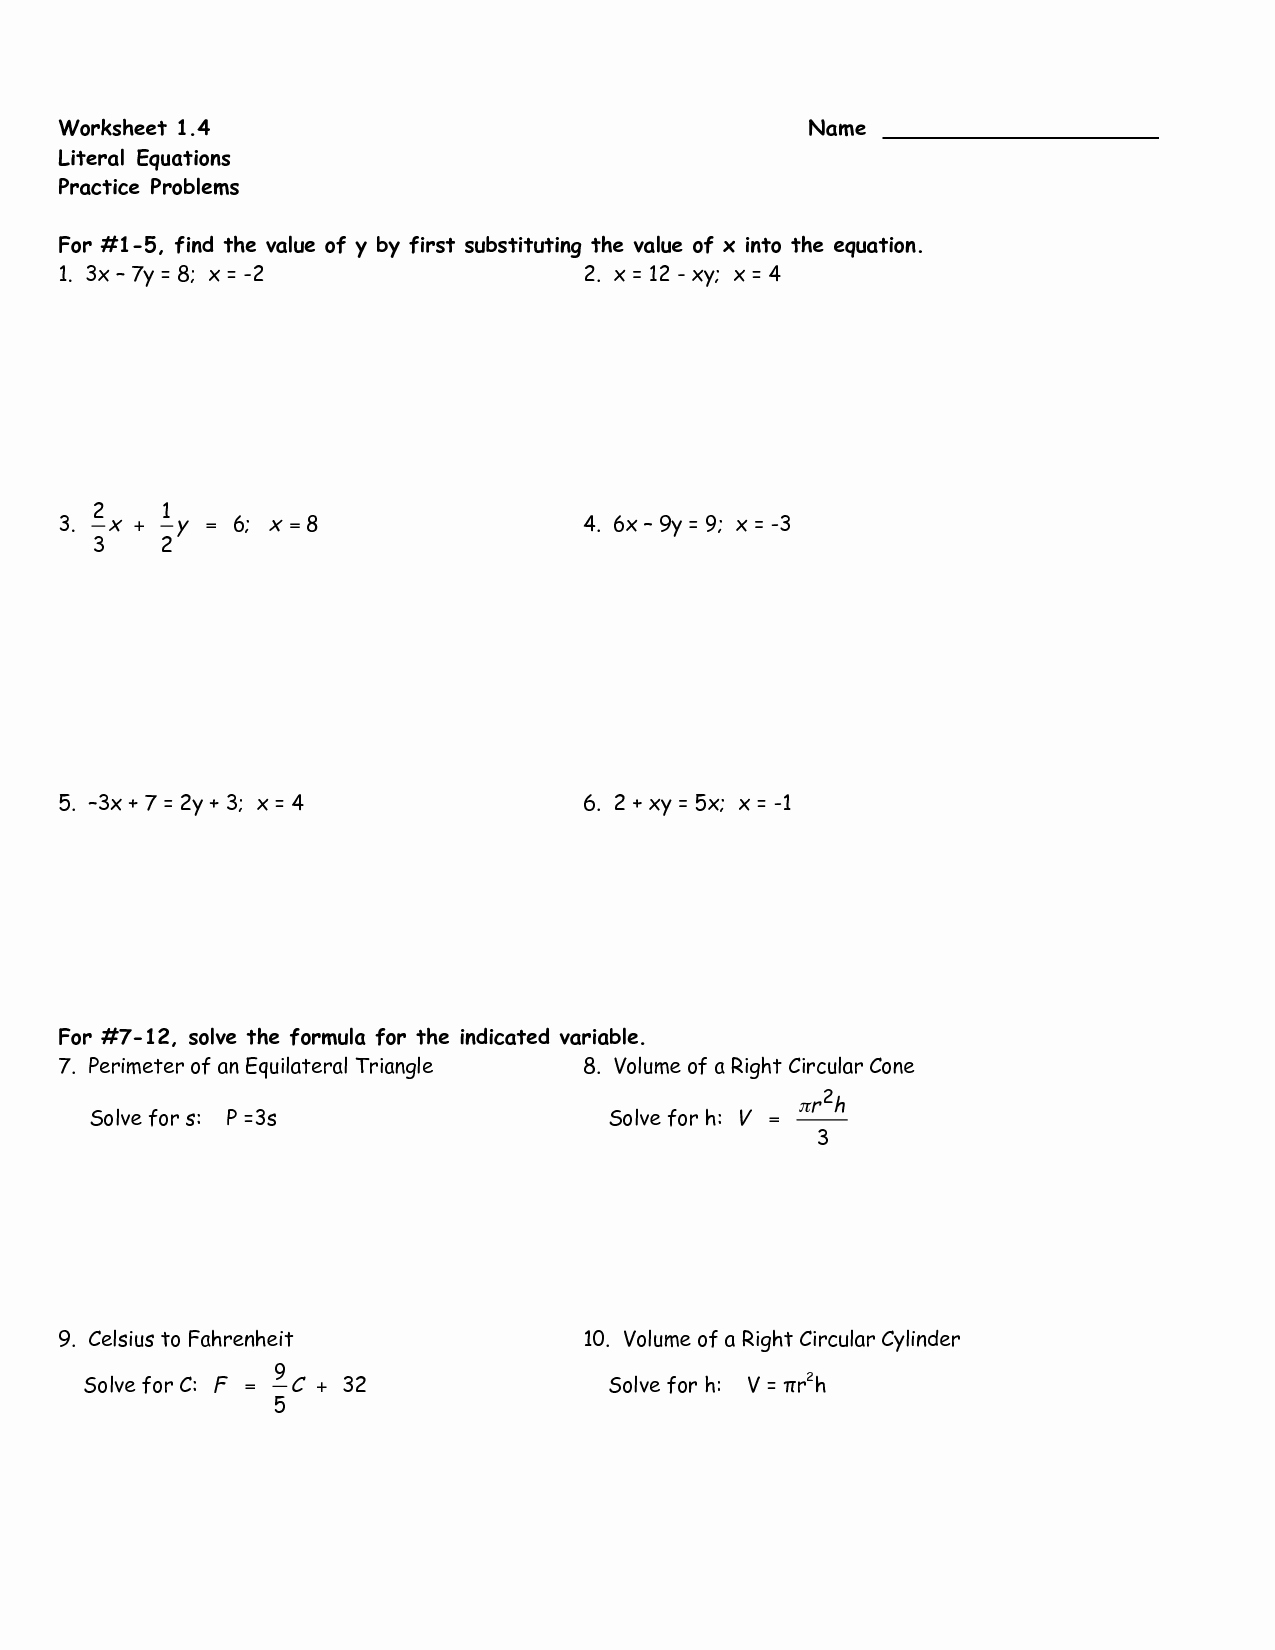 Literal Equations Worksheet Answer New Algebraic Equations Worksheet